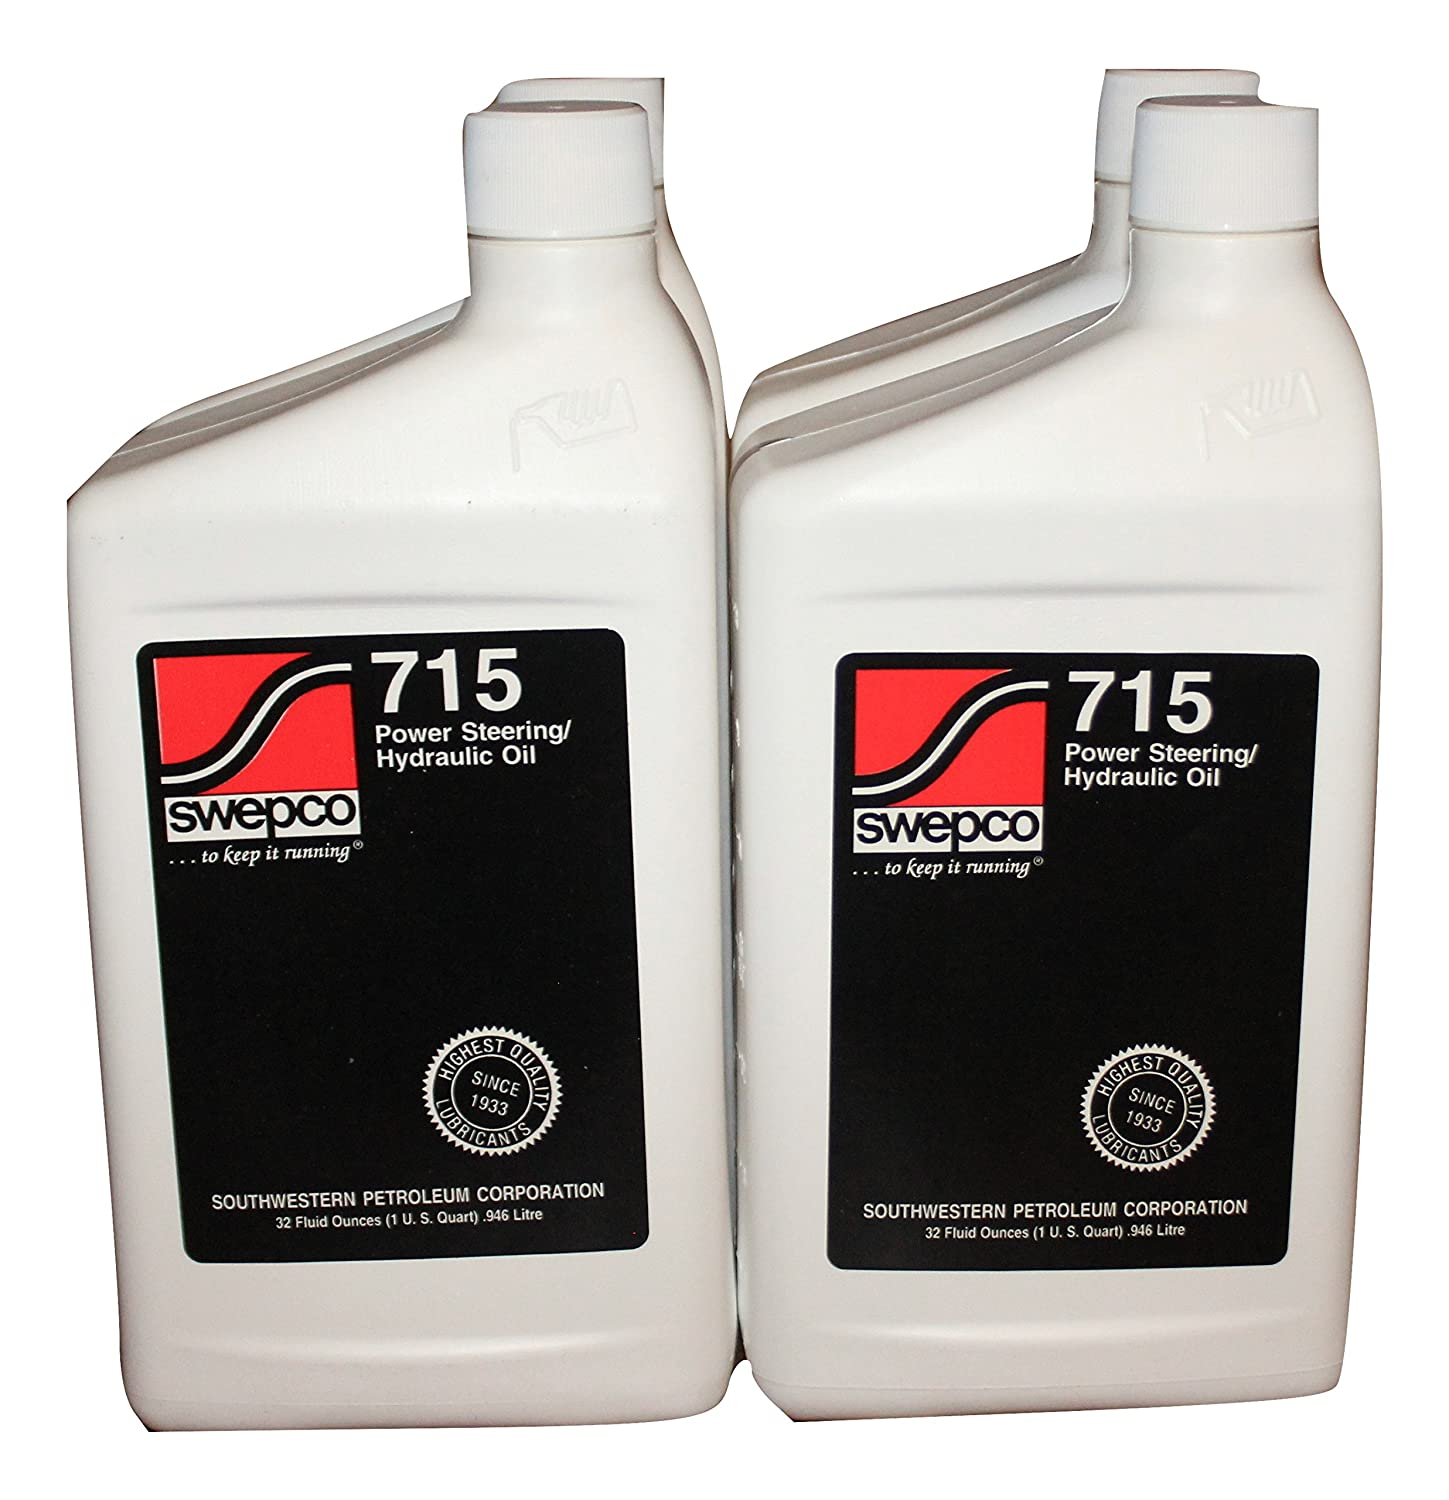 715 Power Steering/Hydraulic Oil Case of 4qts. Swepco